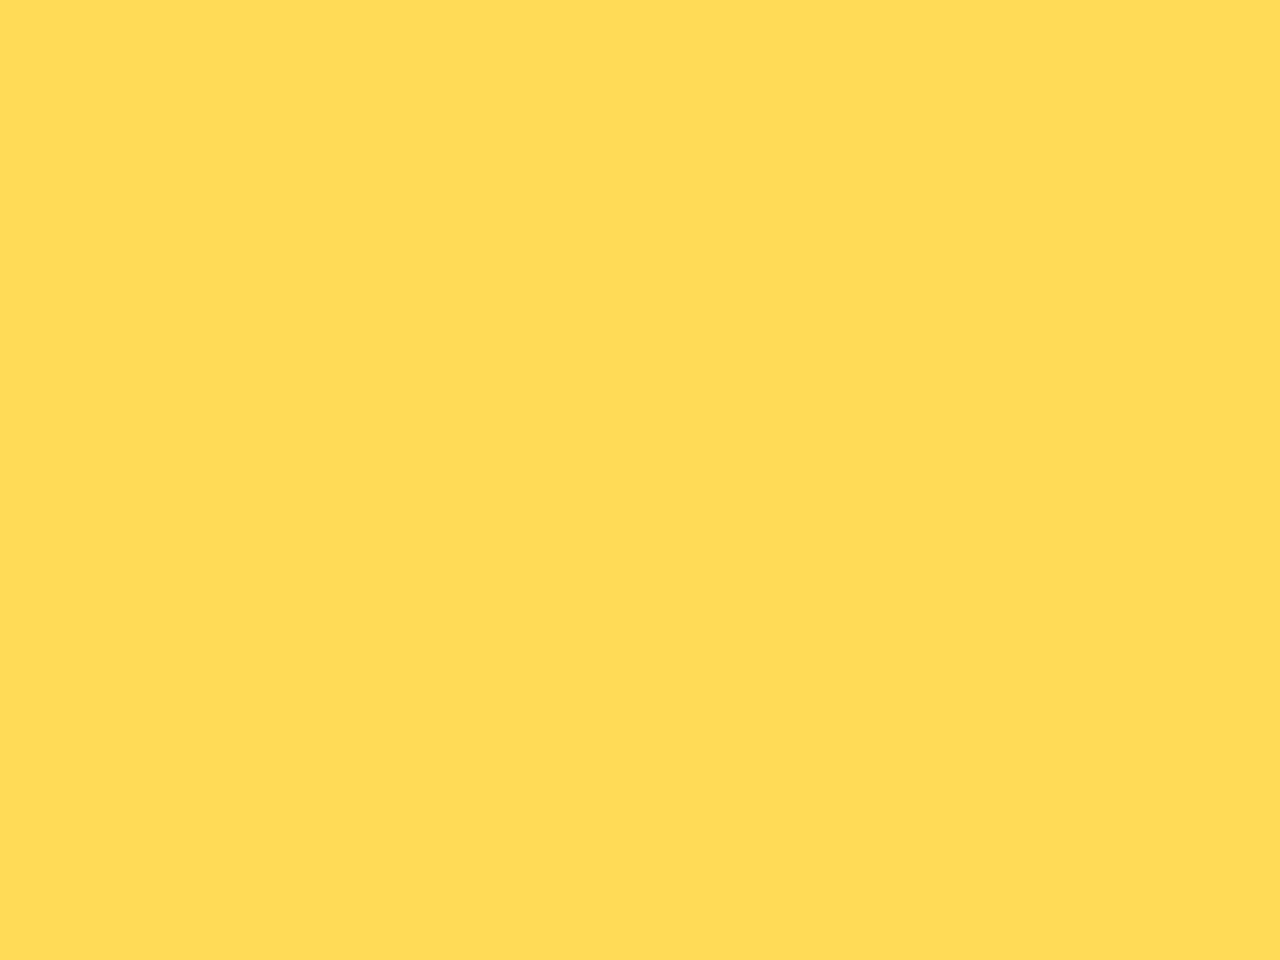 mustard color wallpaper 01 0f 10 with solid color